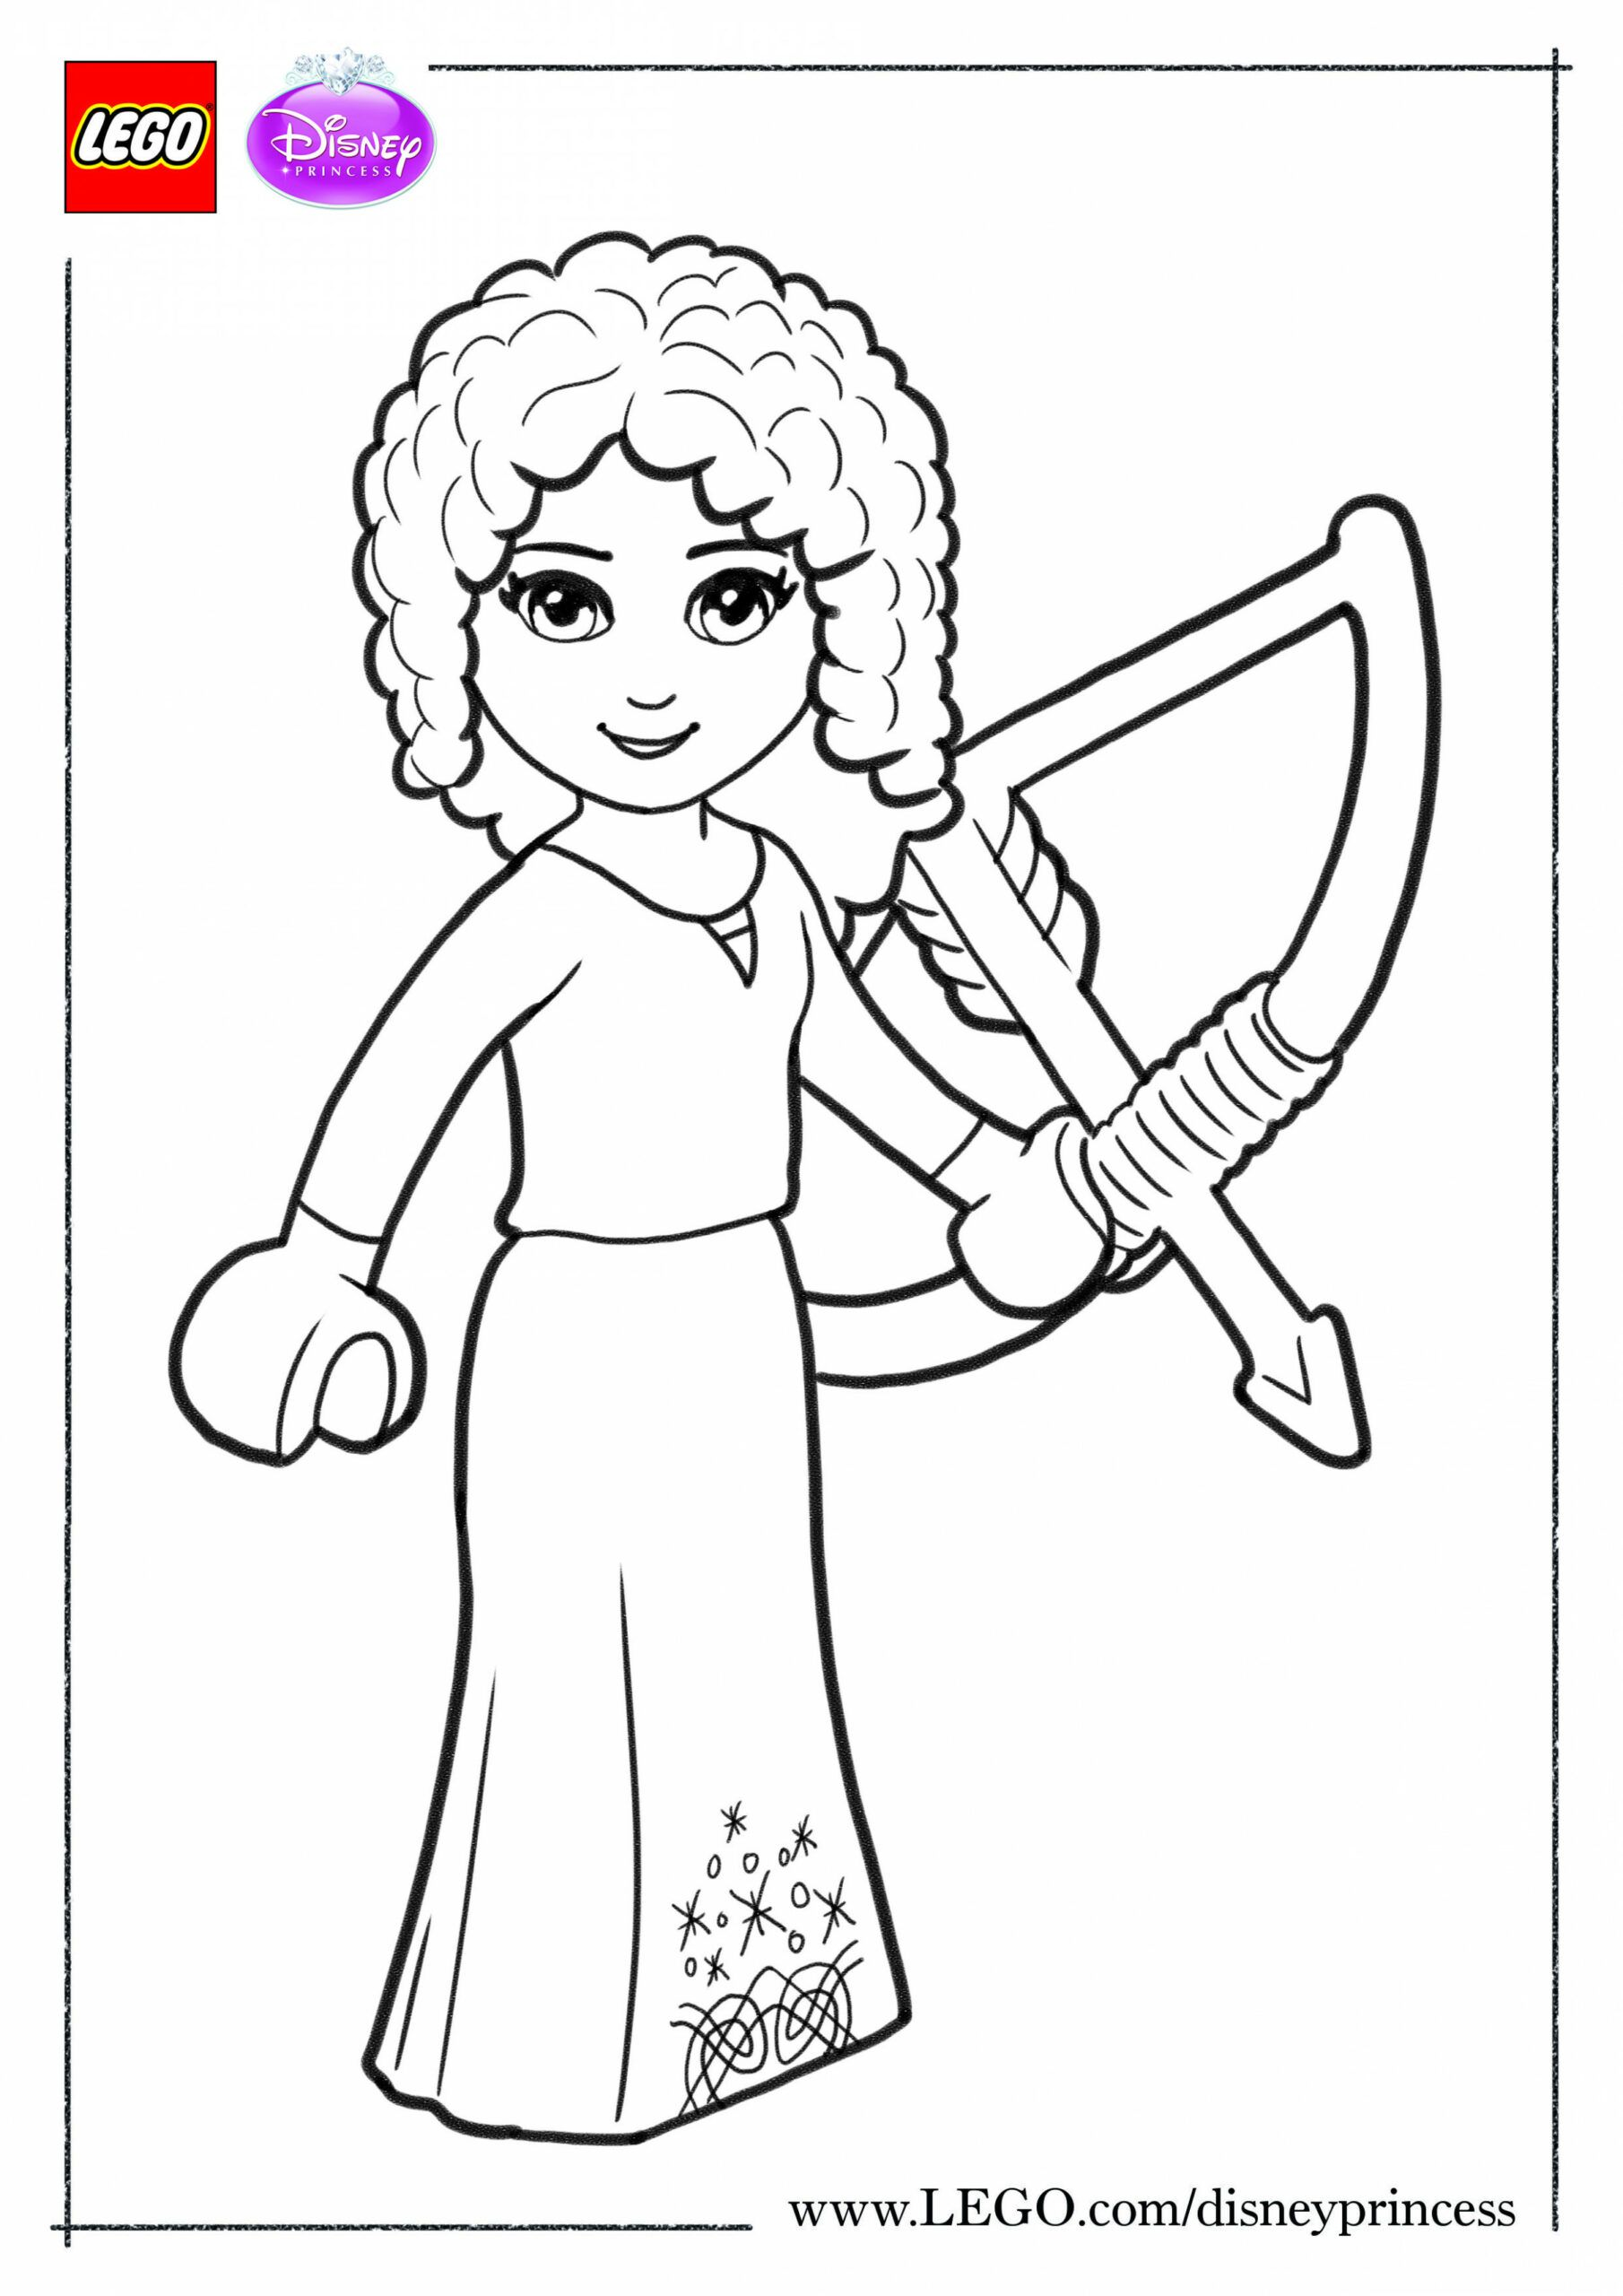 8 Lego Princess Coloring Pages Lego Coloring Pages Princess Coloring Pages Halloween Coloring Pages